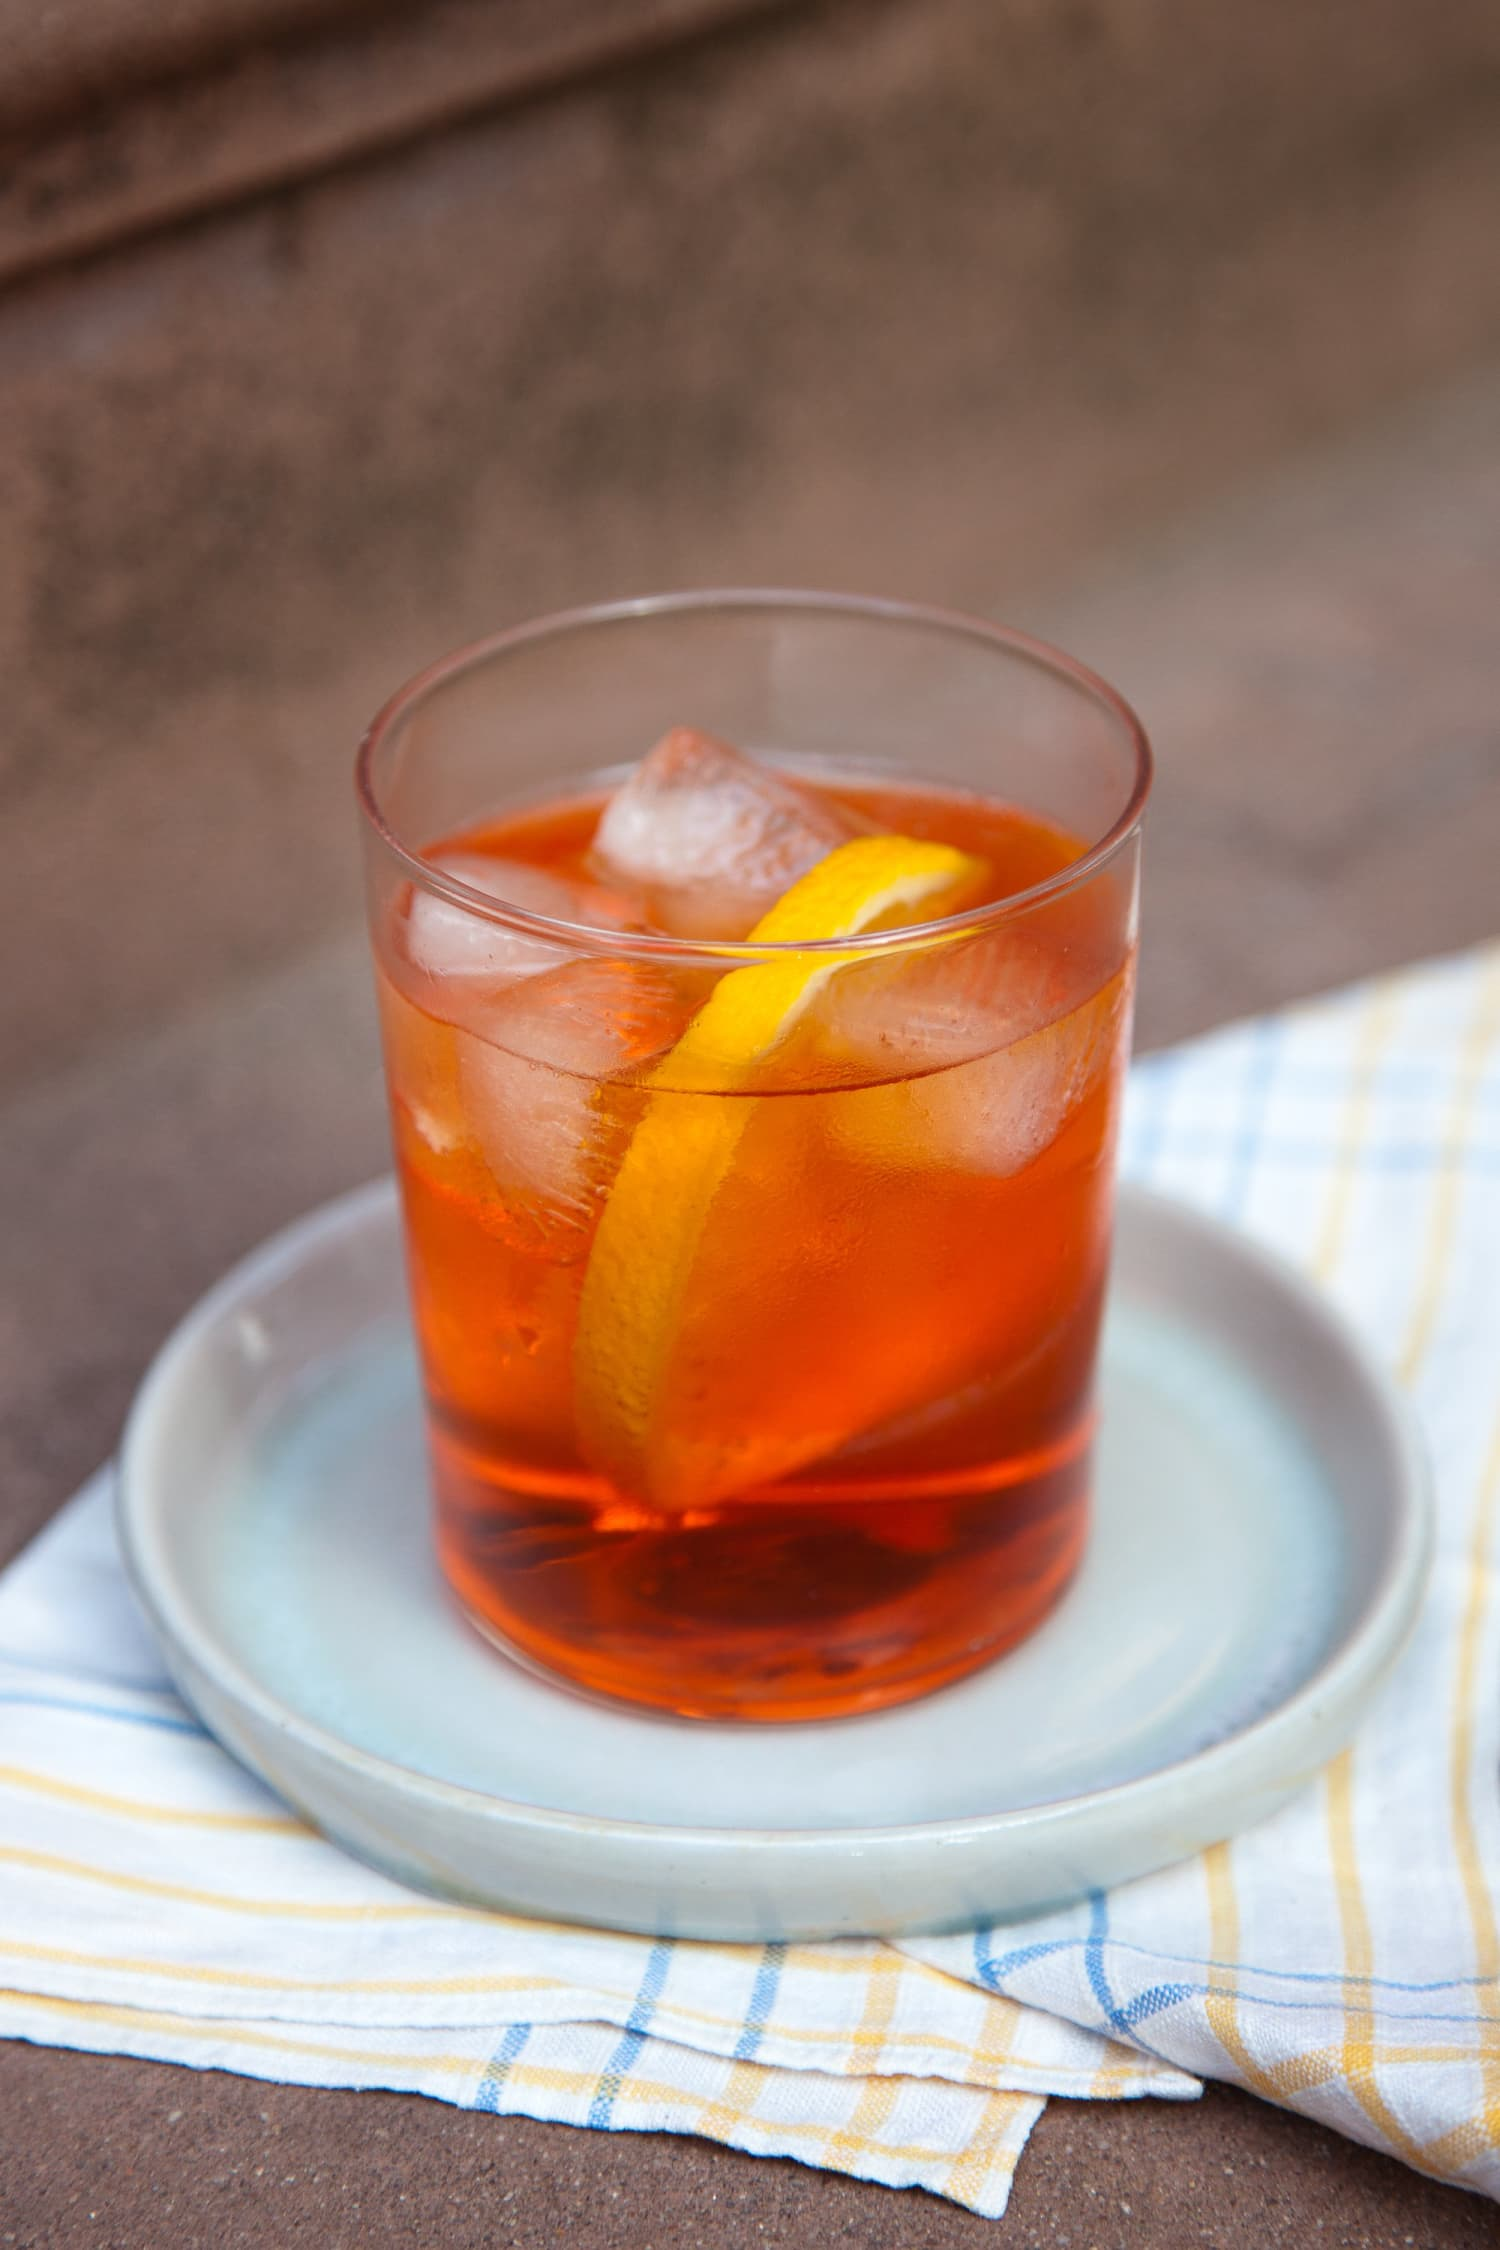 Please, Just Let Us Spritz in Peace